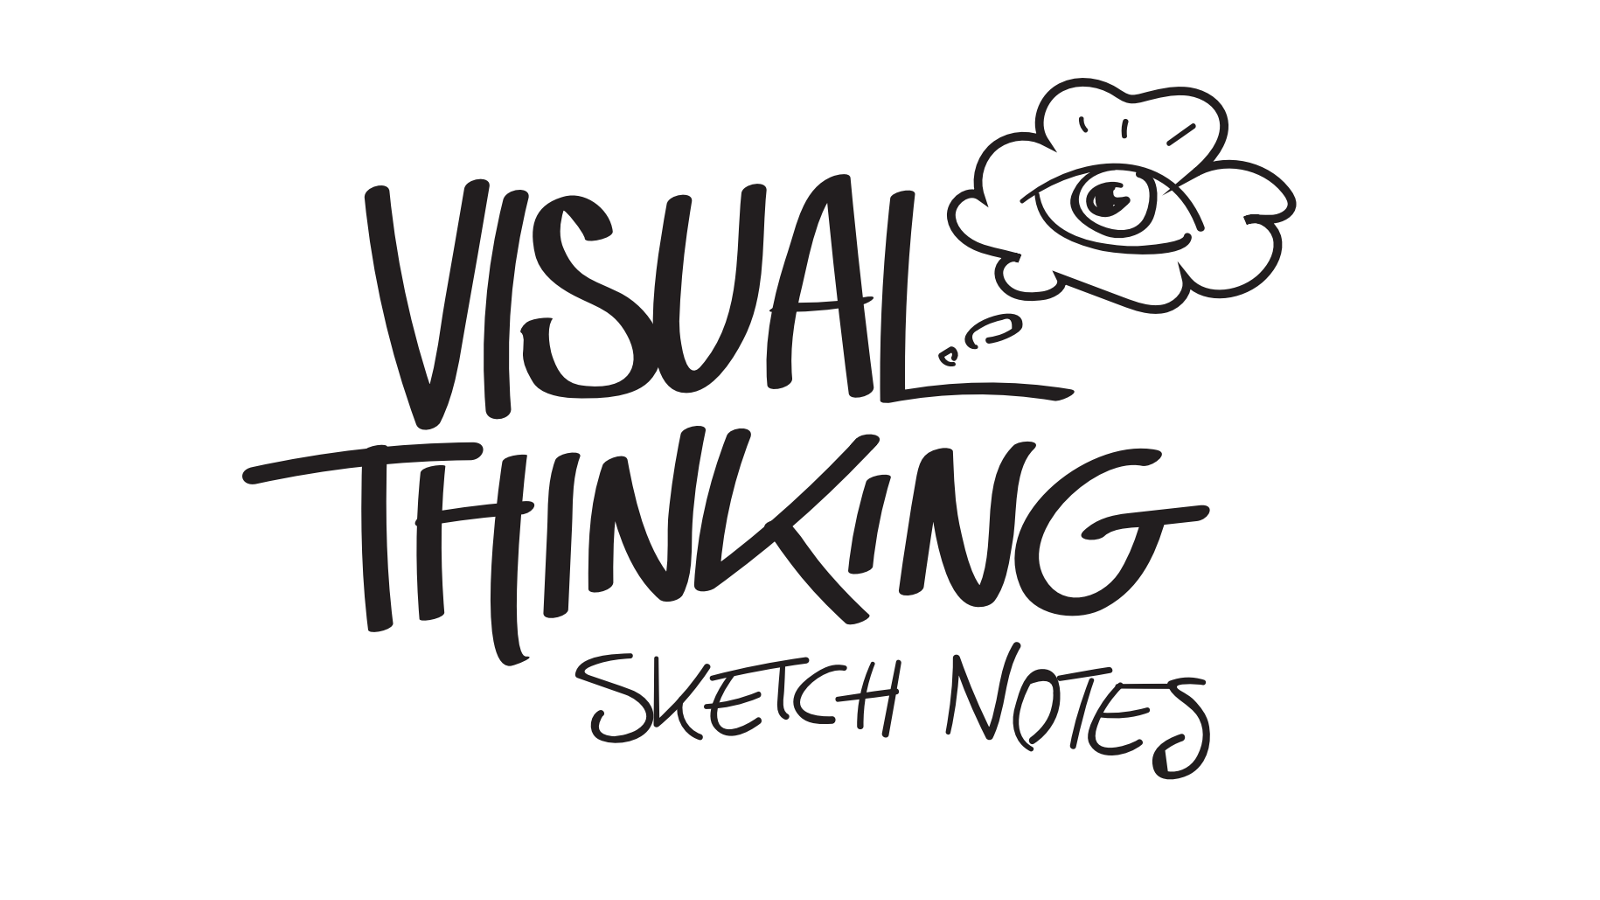 It's Time to Draw: Visual Thinking, Sketch Notes, and the